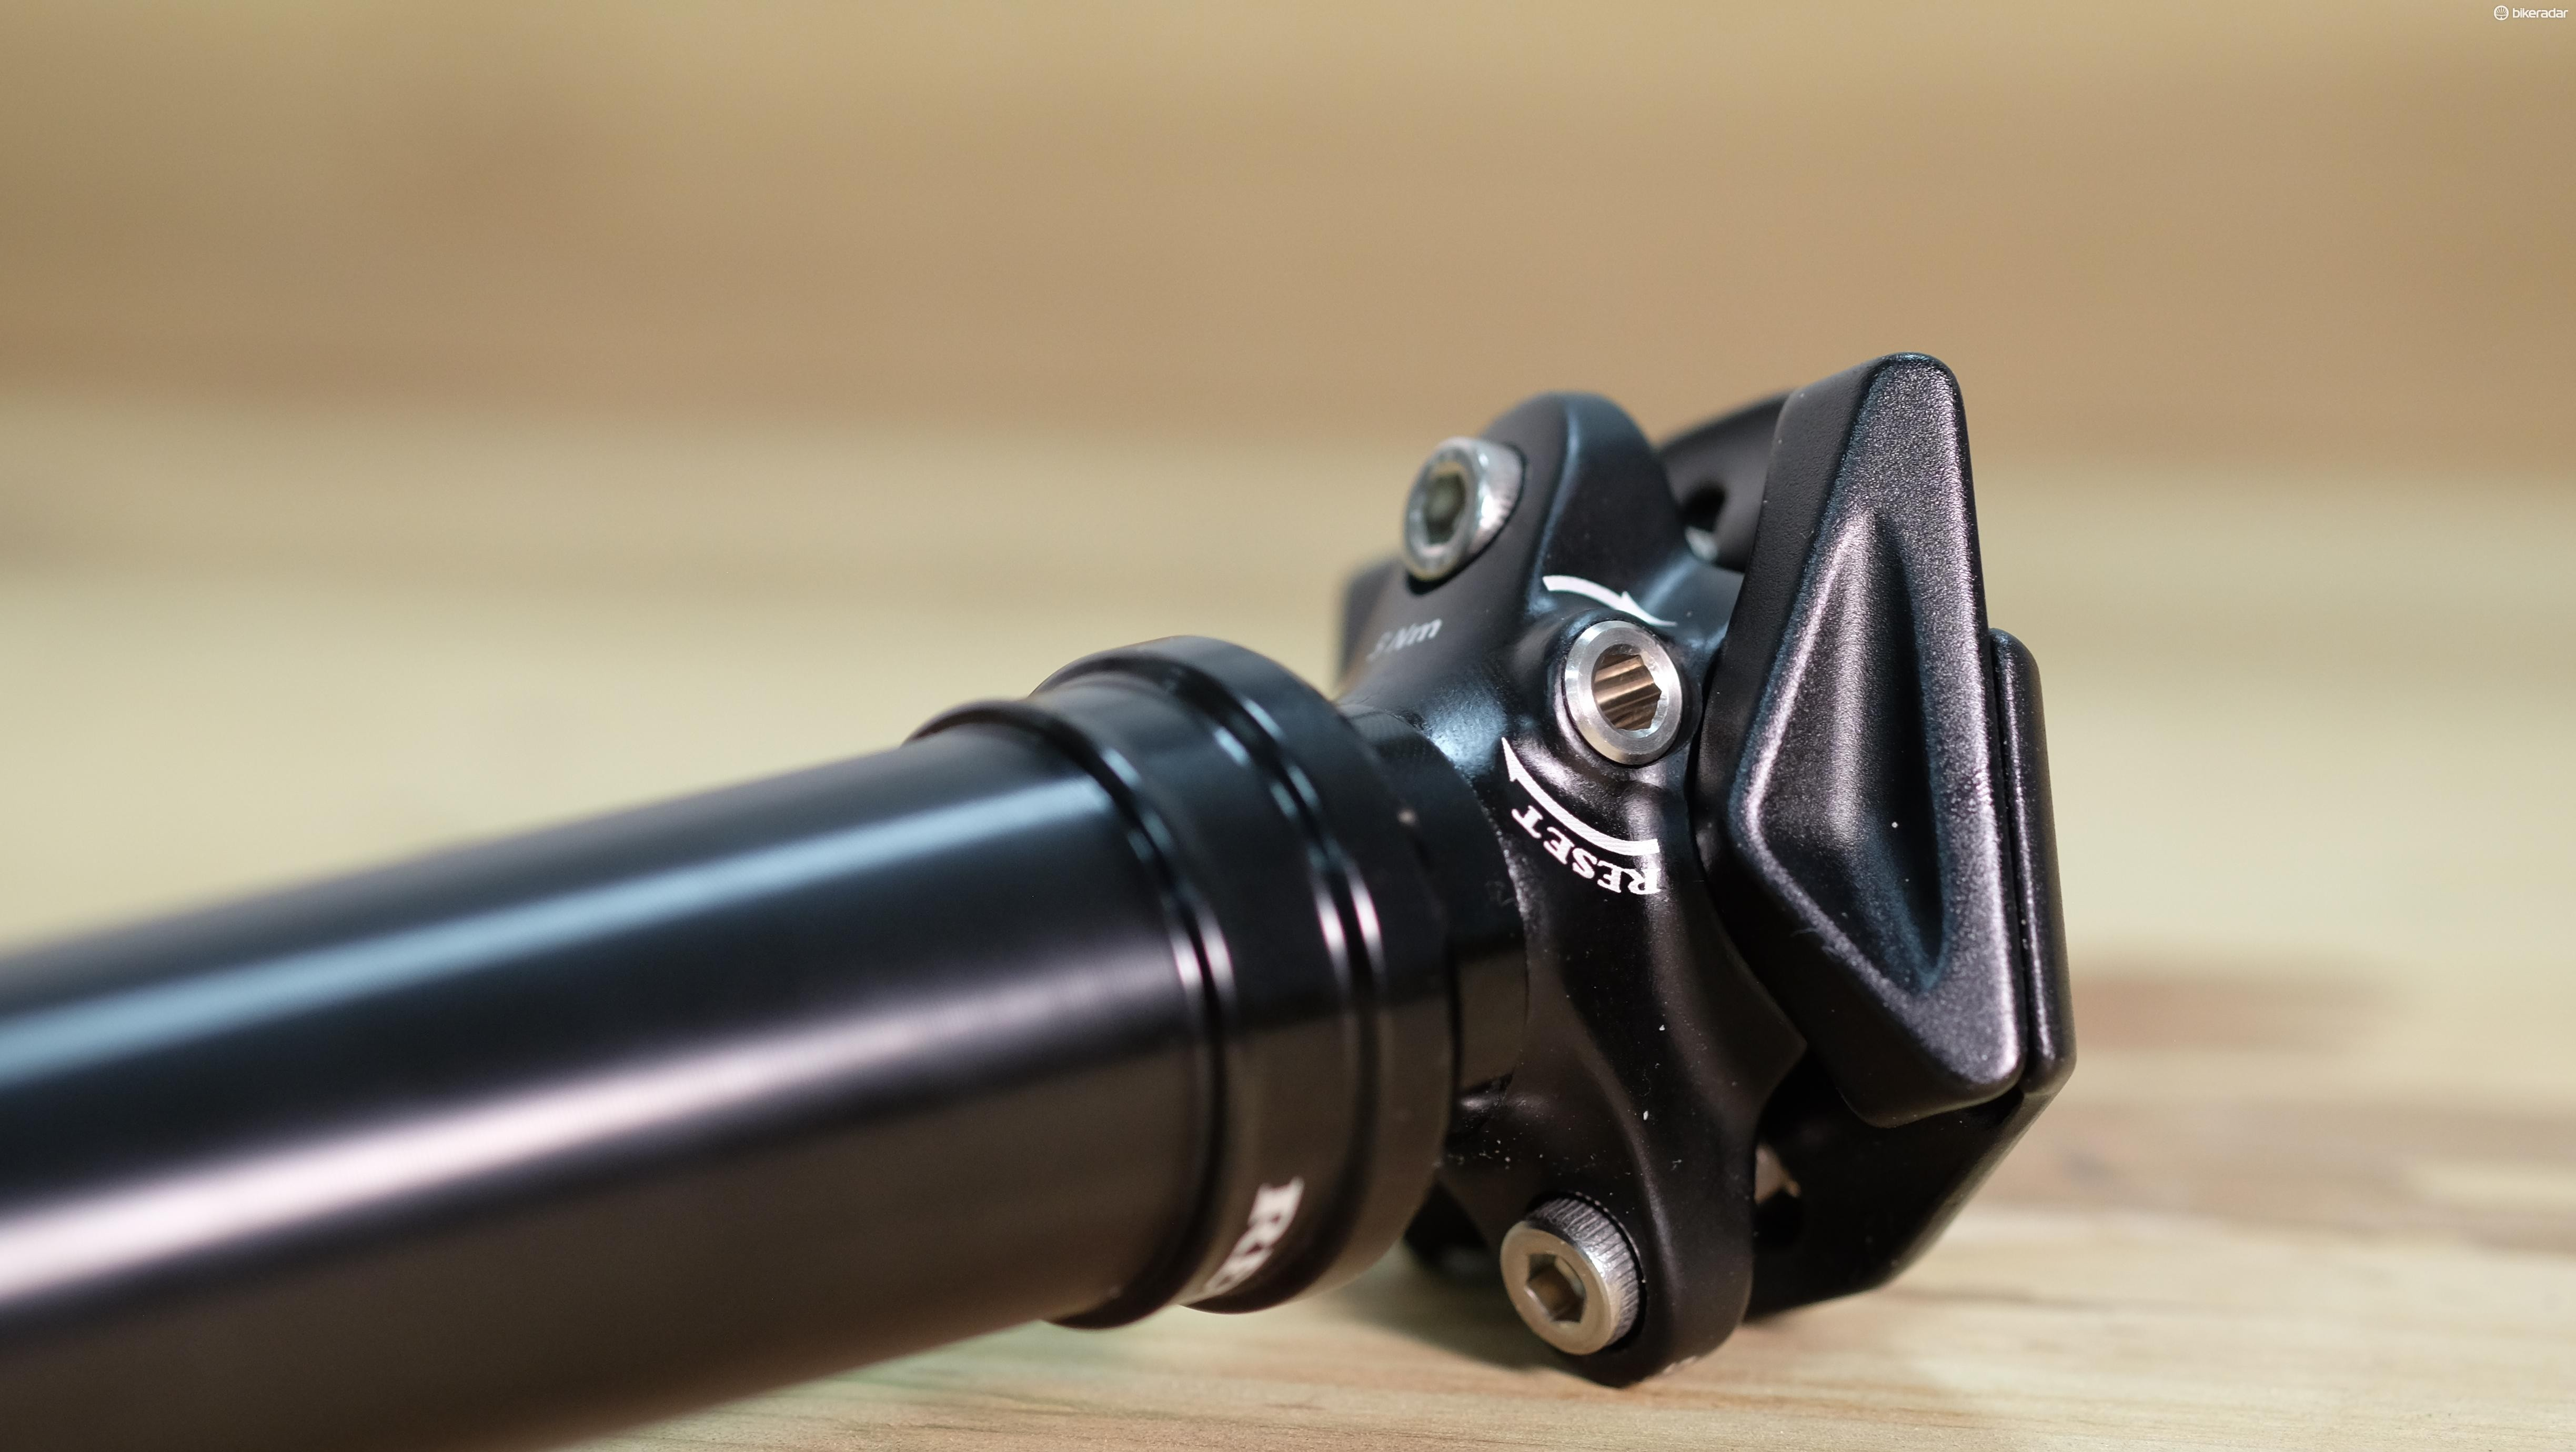 Design refinements have seen the Revive's bleed valve go from a button to a bolt